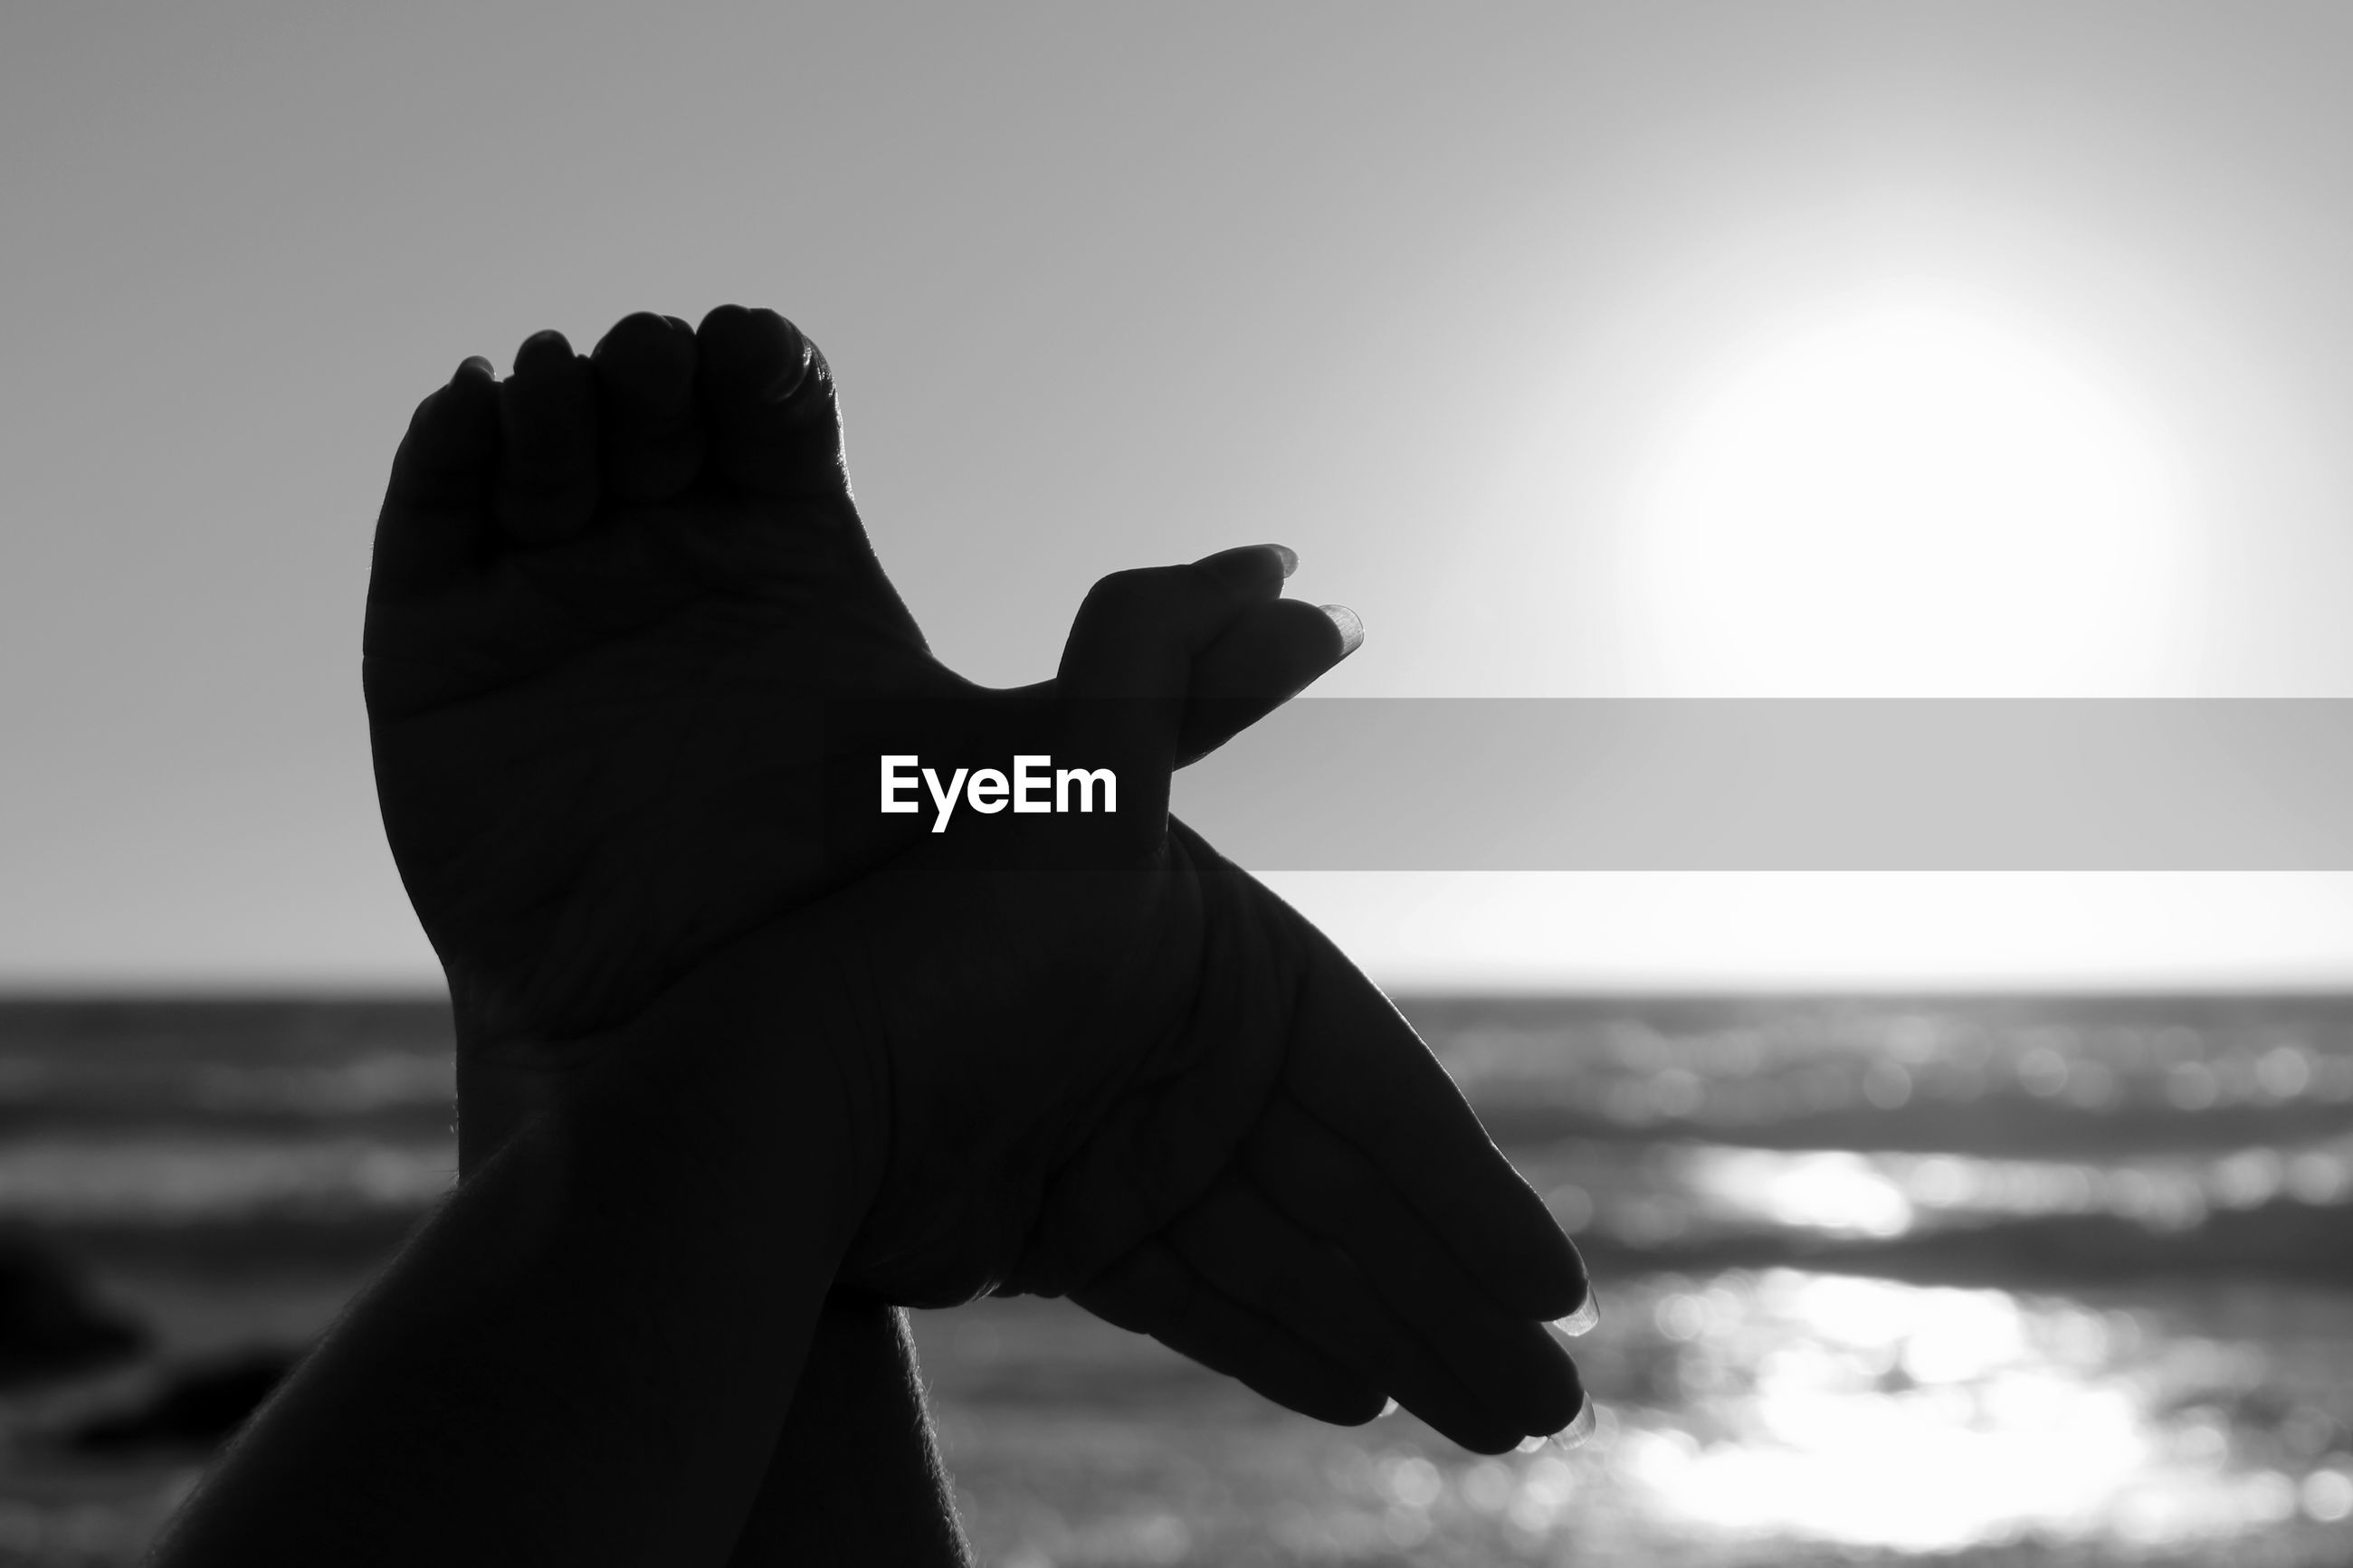 Cropped image of silhouette hands making bird sign against sky